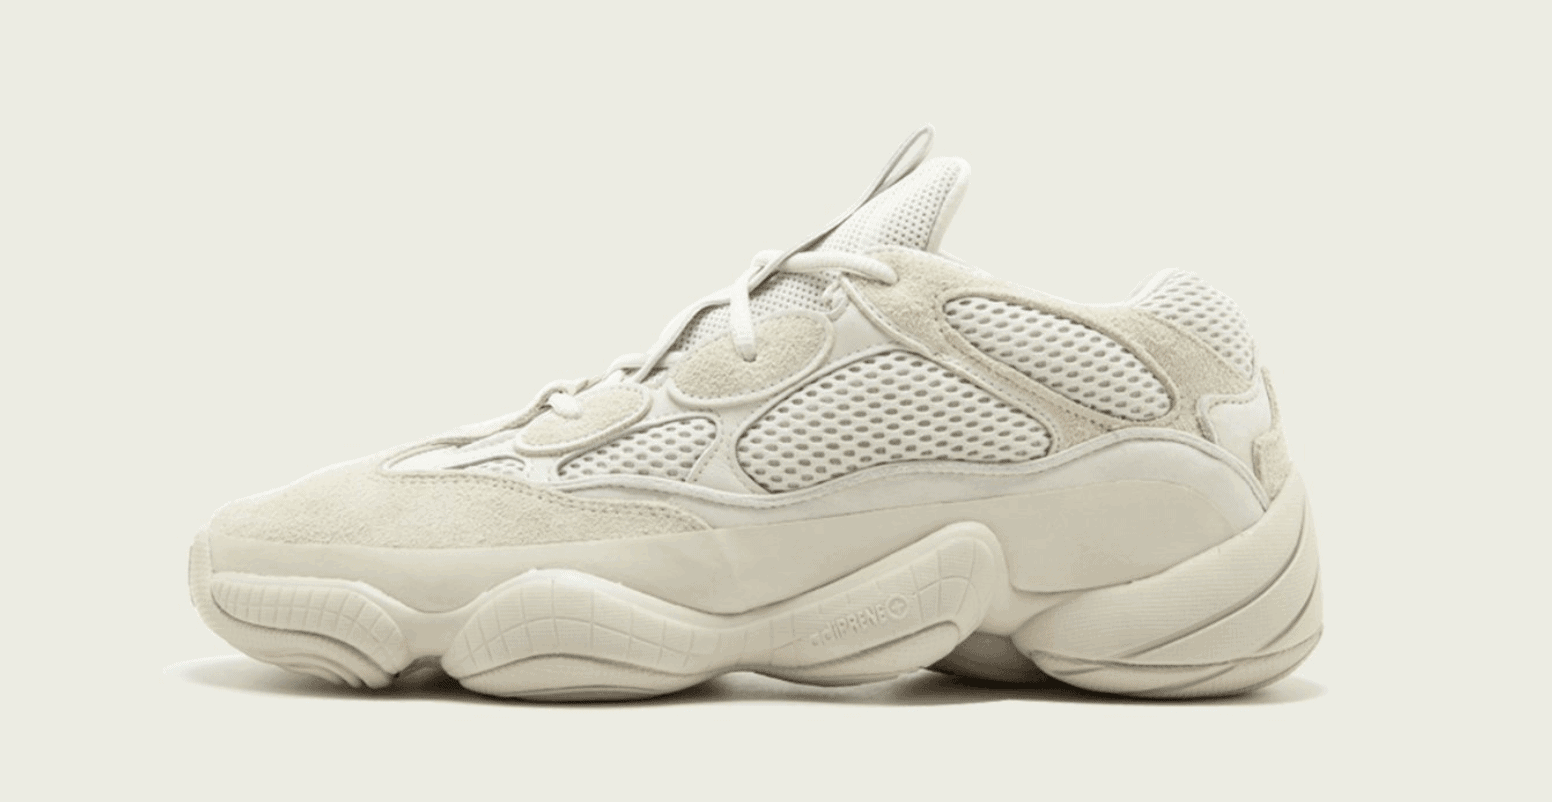 7f0eb3f8a7d63 adidas Yeezy Desert Rat 500. Release Date  February March 2018. Price    200. Color  Blush Blush Style Code  DB2908